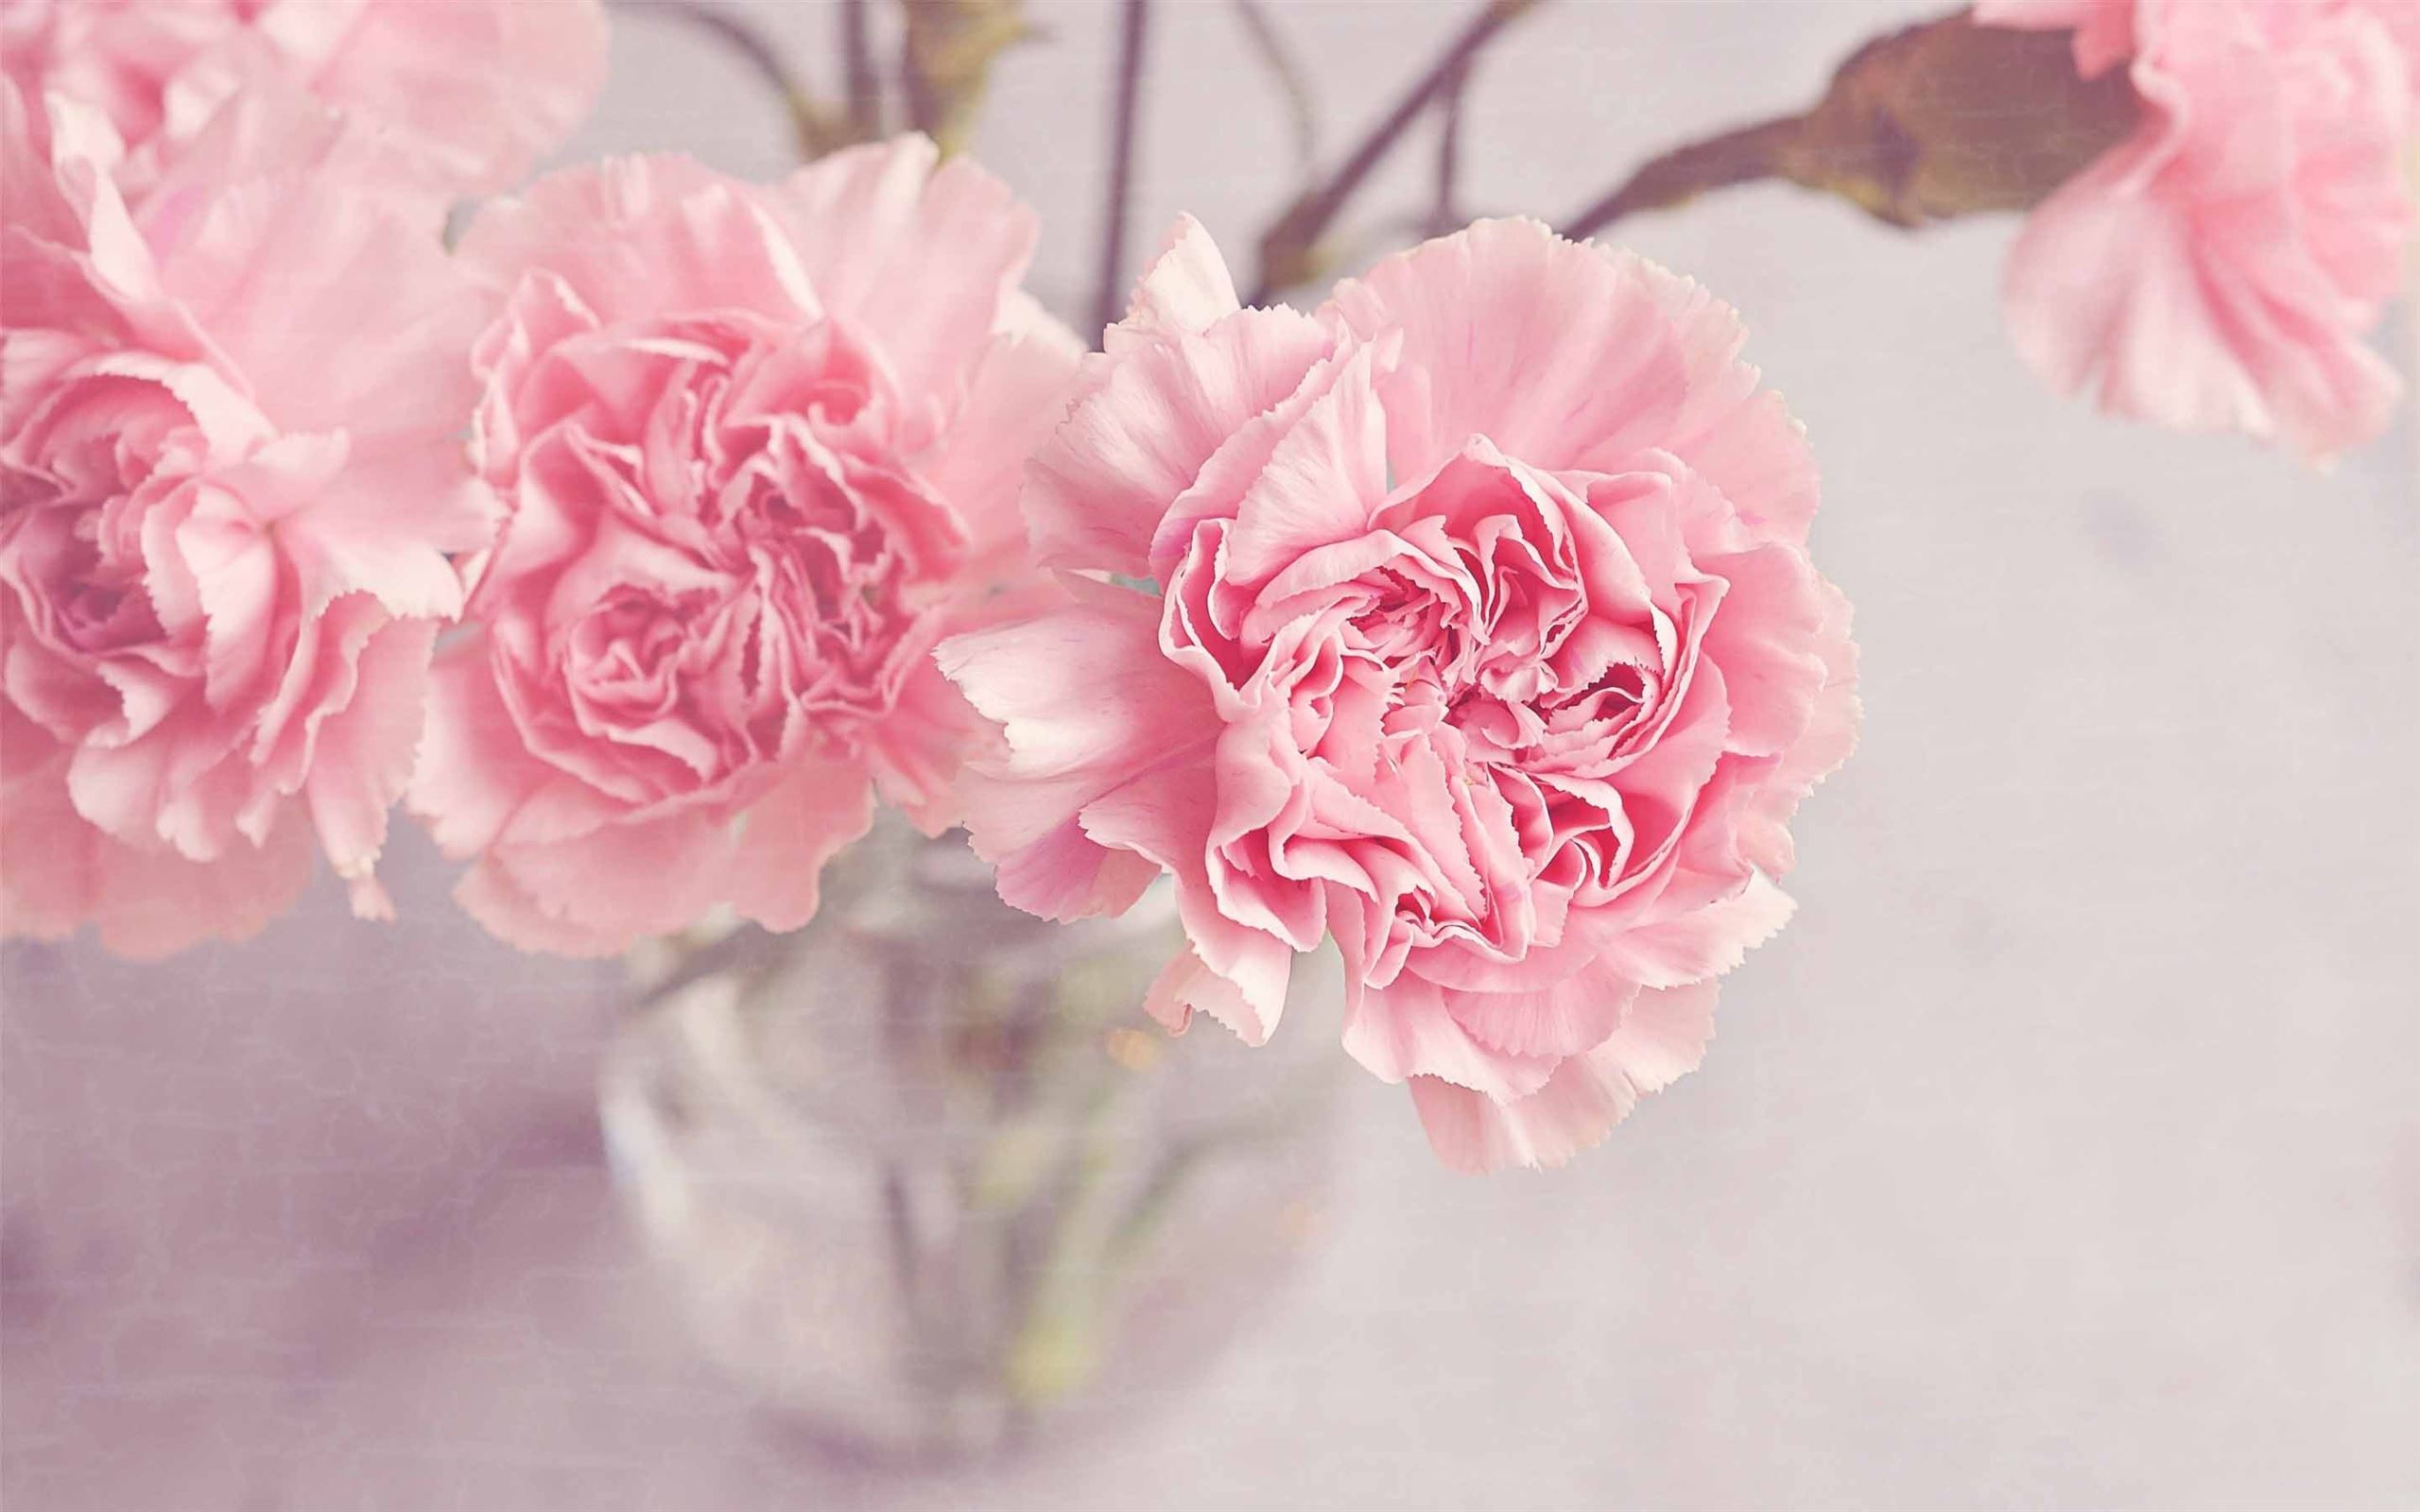 Light Pink Carnation Flowers Macbook Air Wallpaper Download